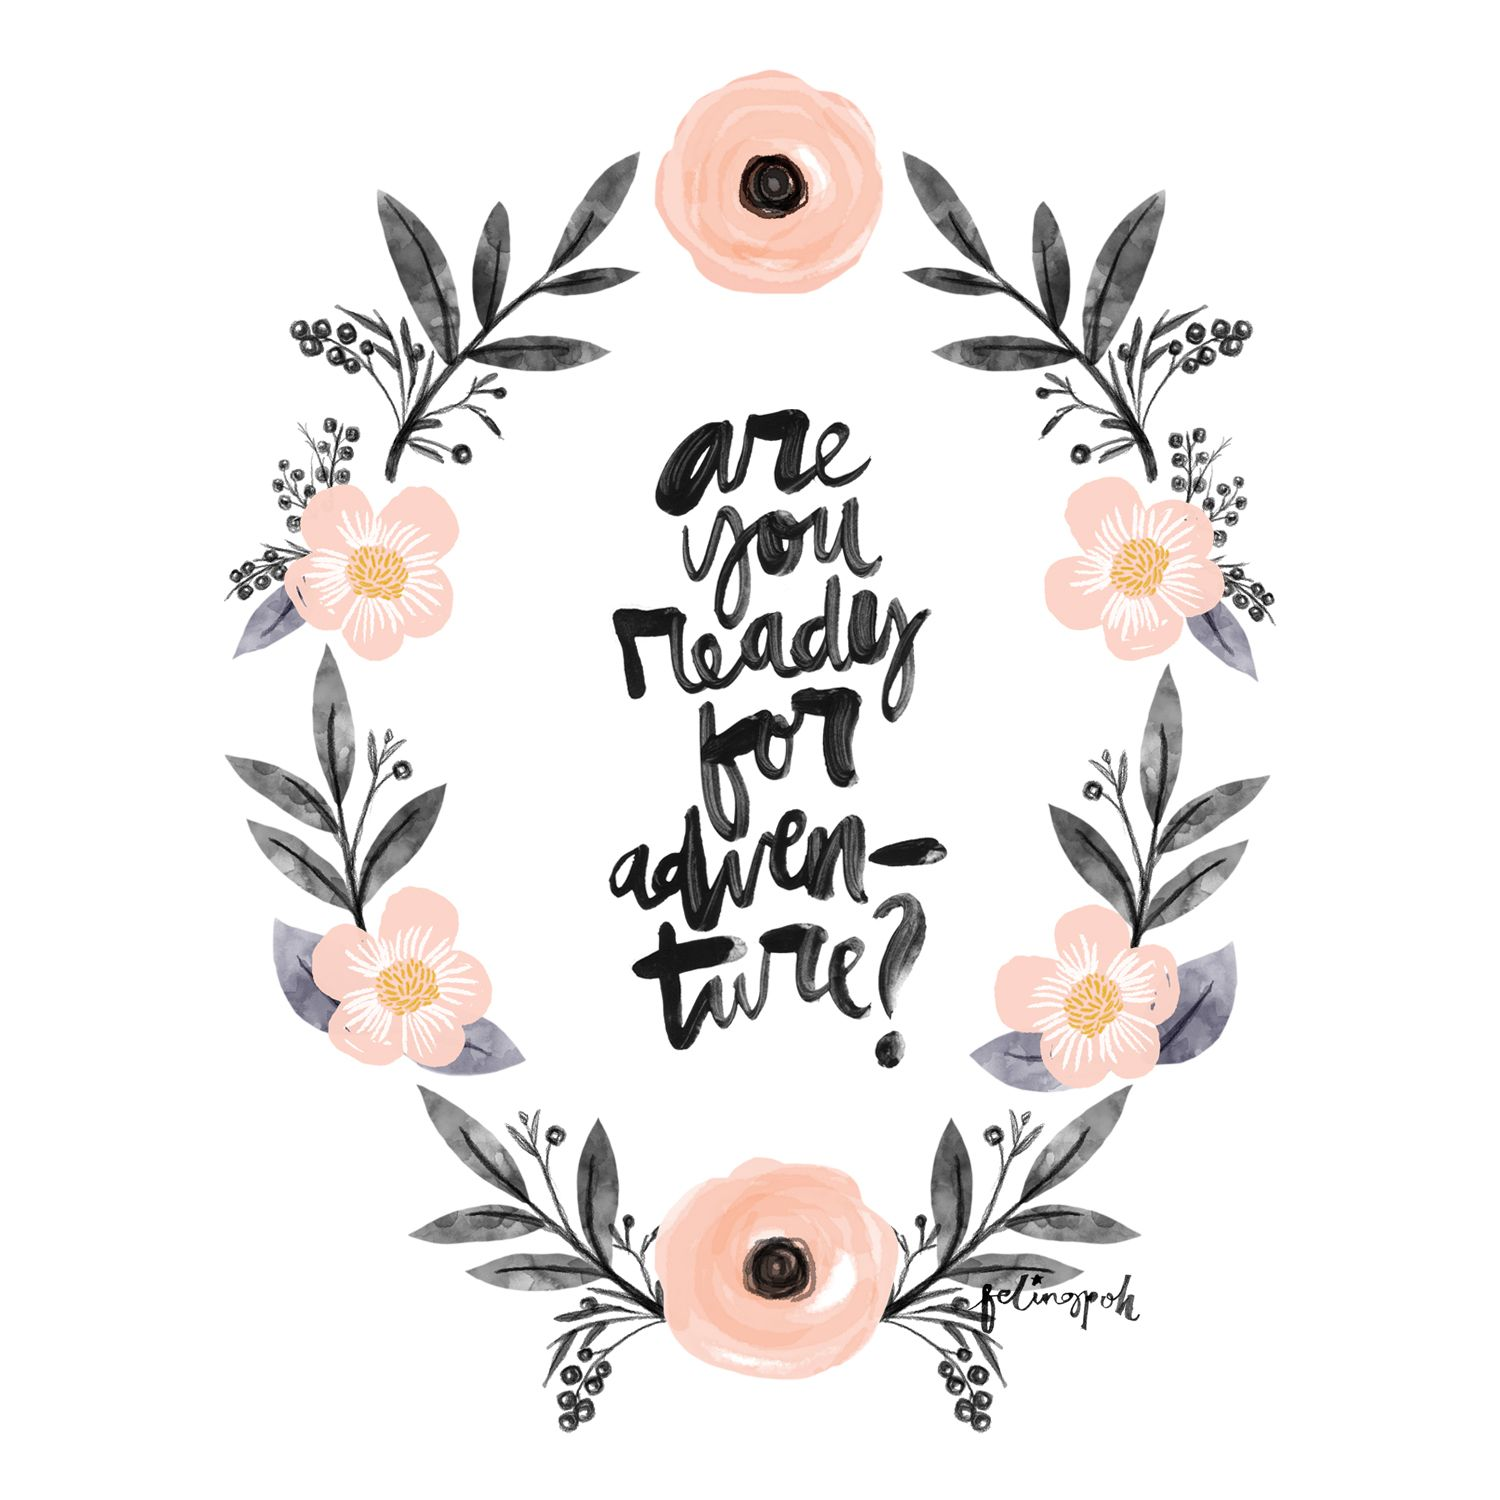 Are You Ready For Adventure Calligraphy Flowers Wreath Instagram Felingpoh